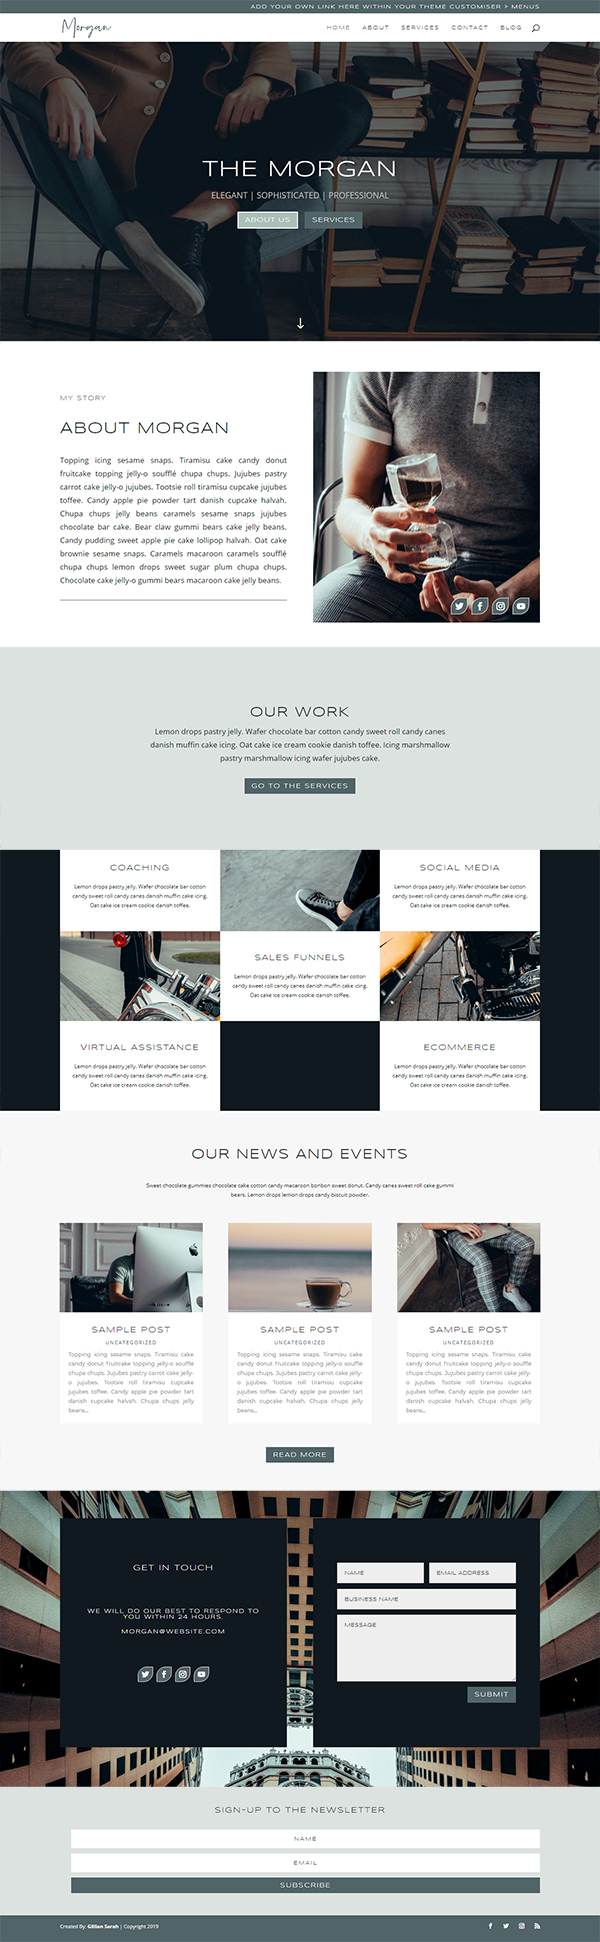 The Morgan - WordPress Divi Theme